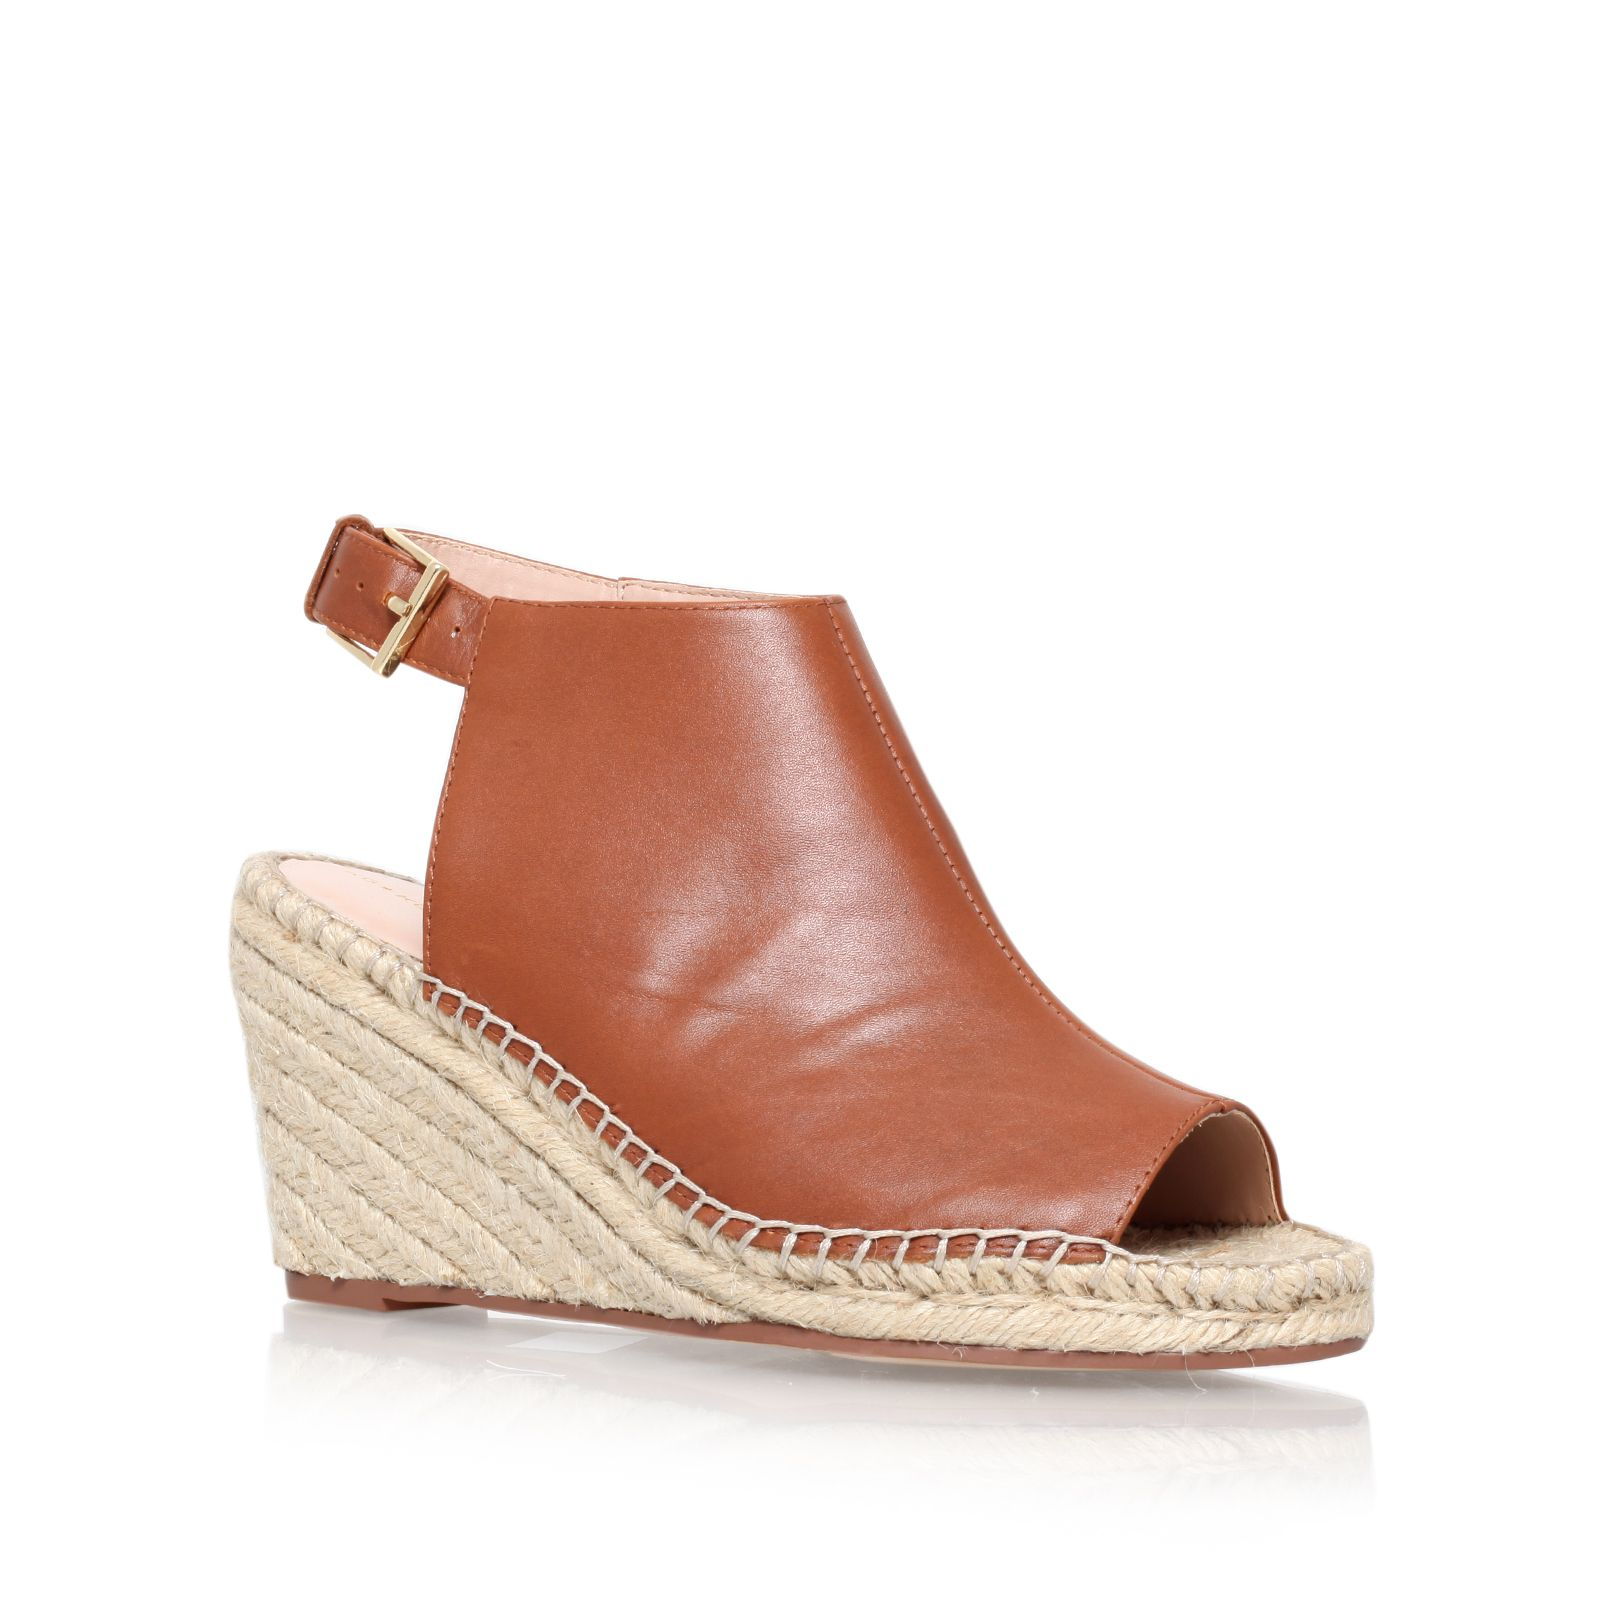 Nelly mid heel espadrille wedge sandals